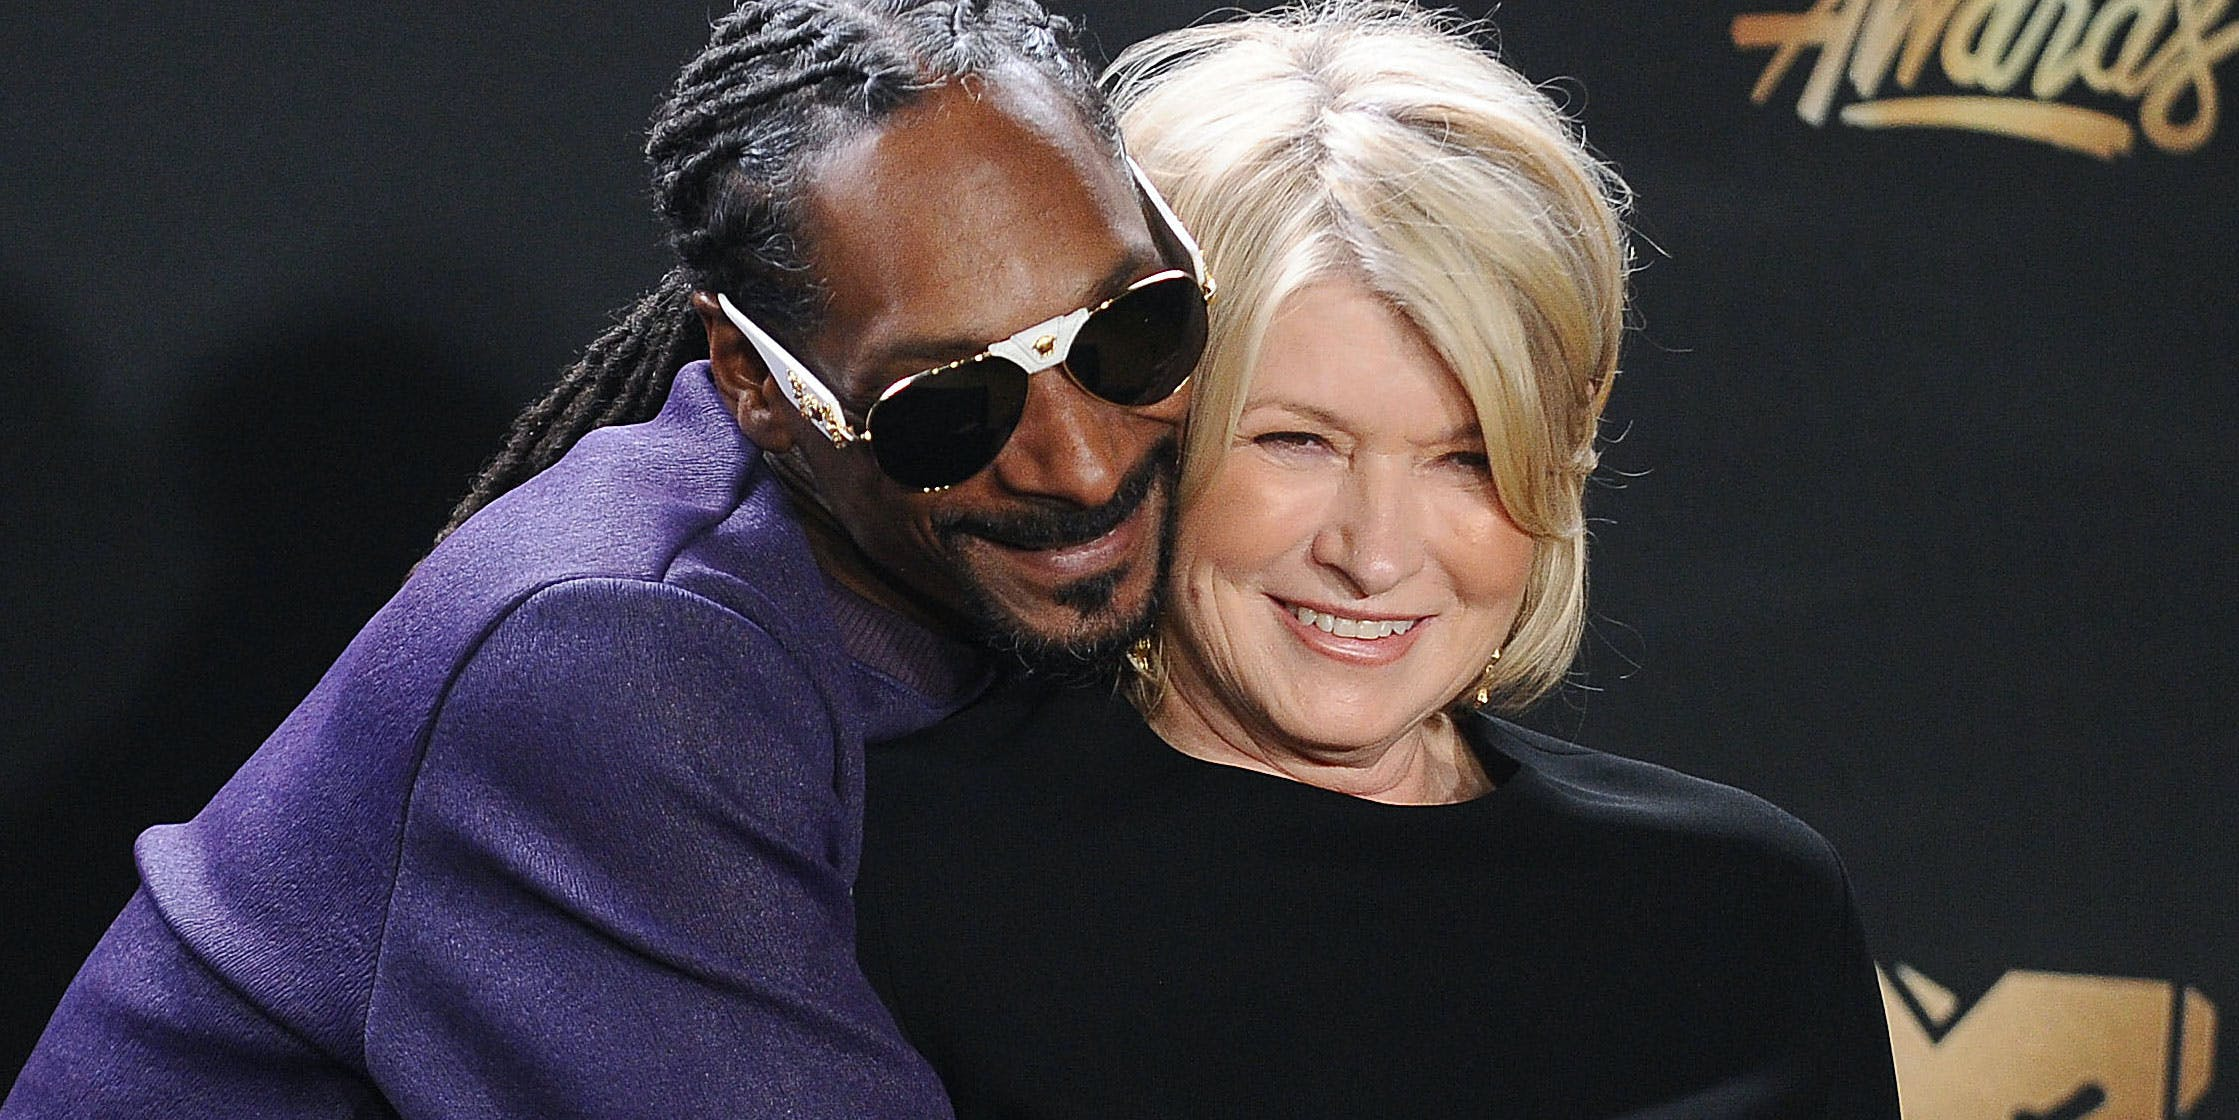 Longtime friends Snoop Dogg and Martha Stewart embrace. The duo recently released the Snoop Dogg and Martha Stewart Cookbook with tons of food cannabis enthusiasts will love.